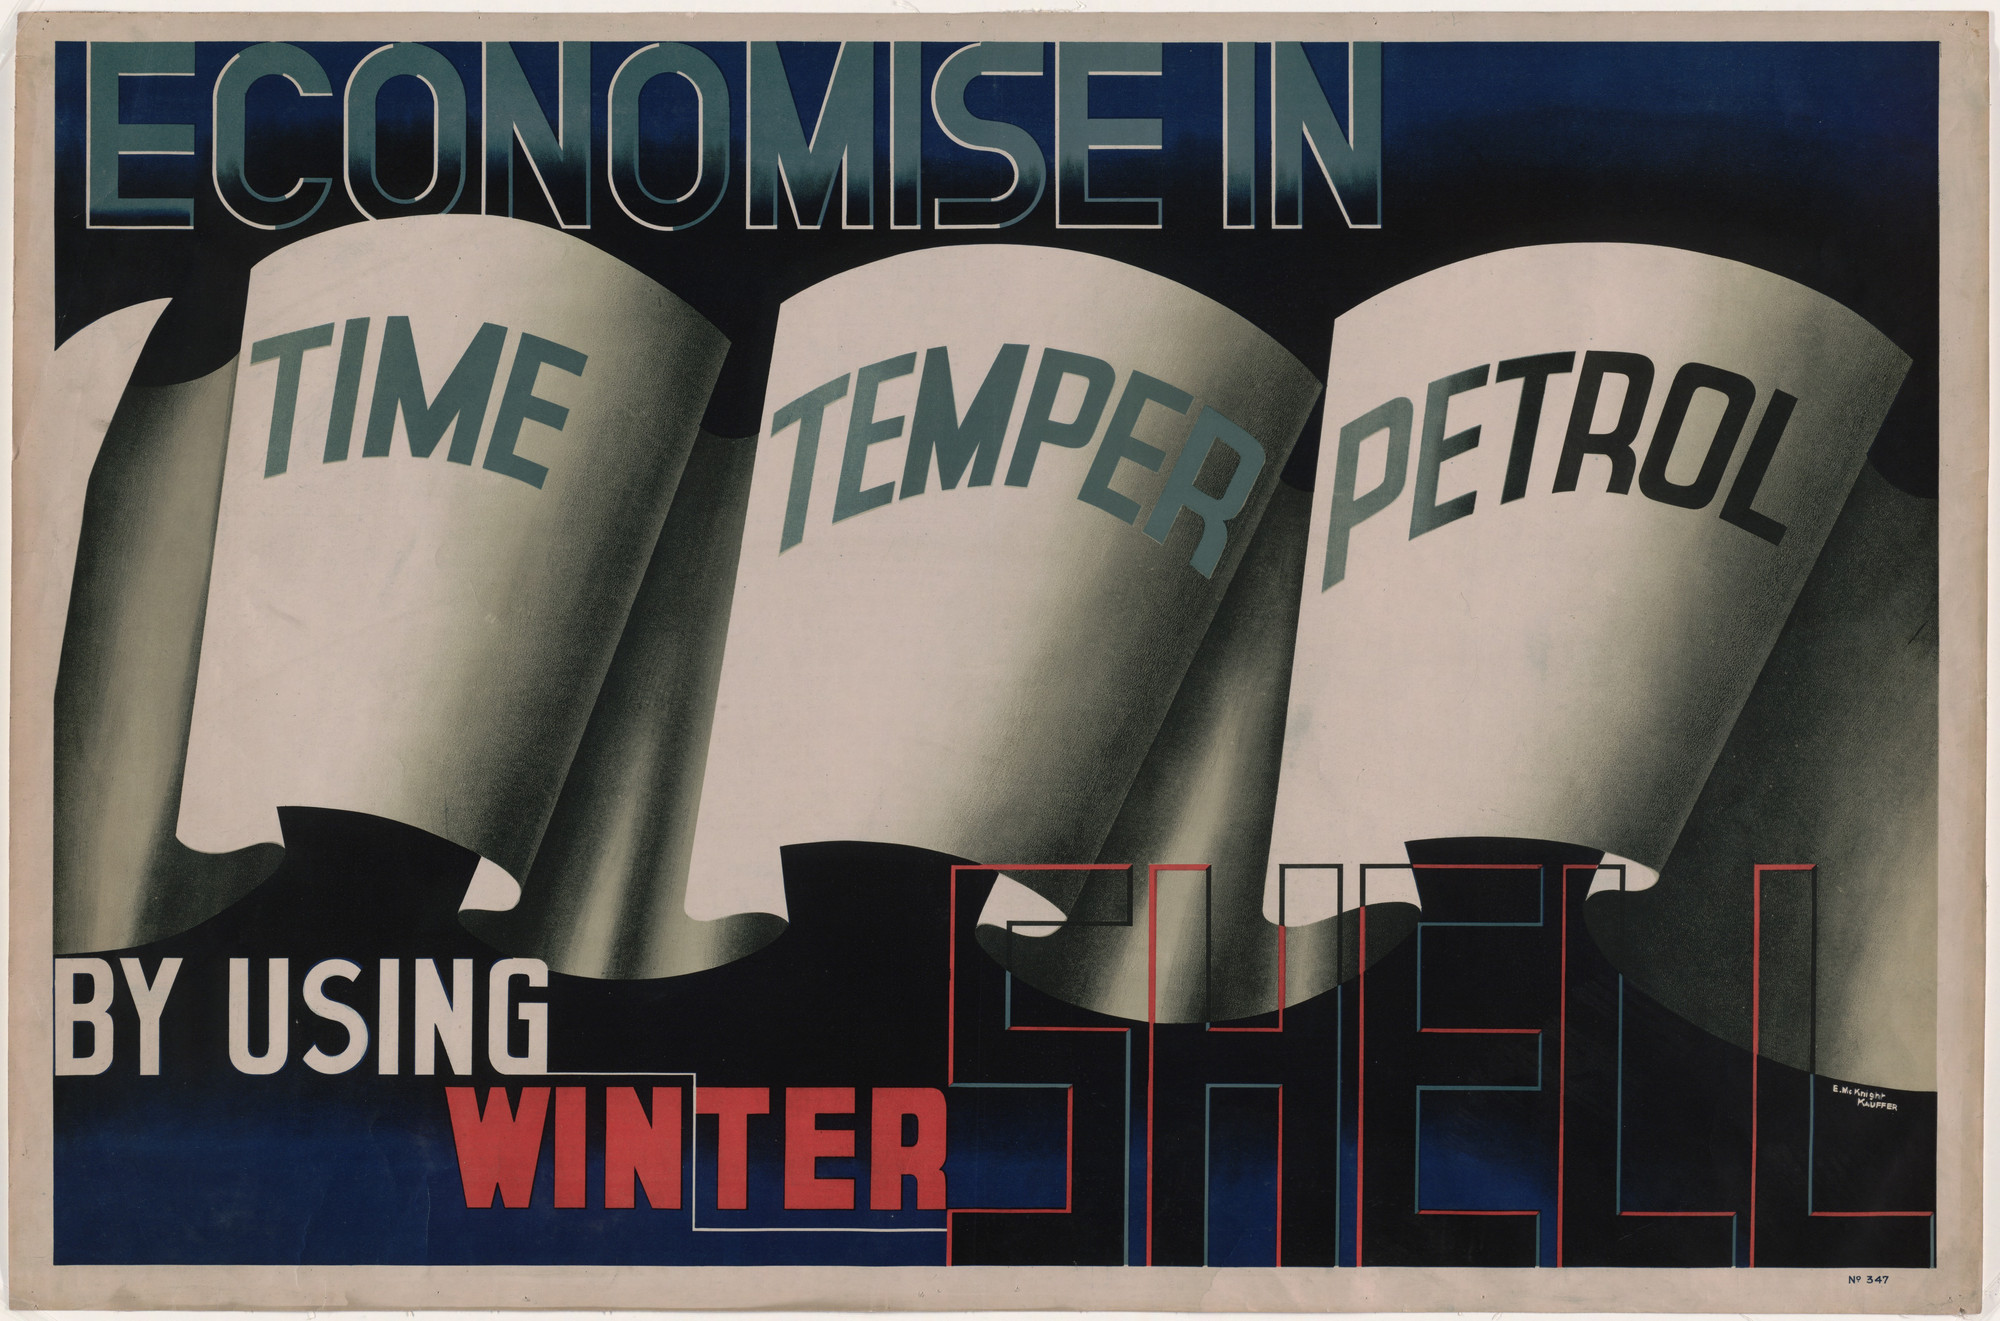 E. McKnight Kauffer. Economize in Time, Temper, Petrol by Using Winter Shell. 1932